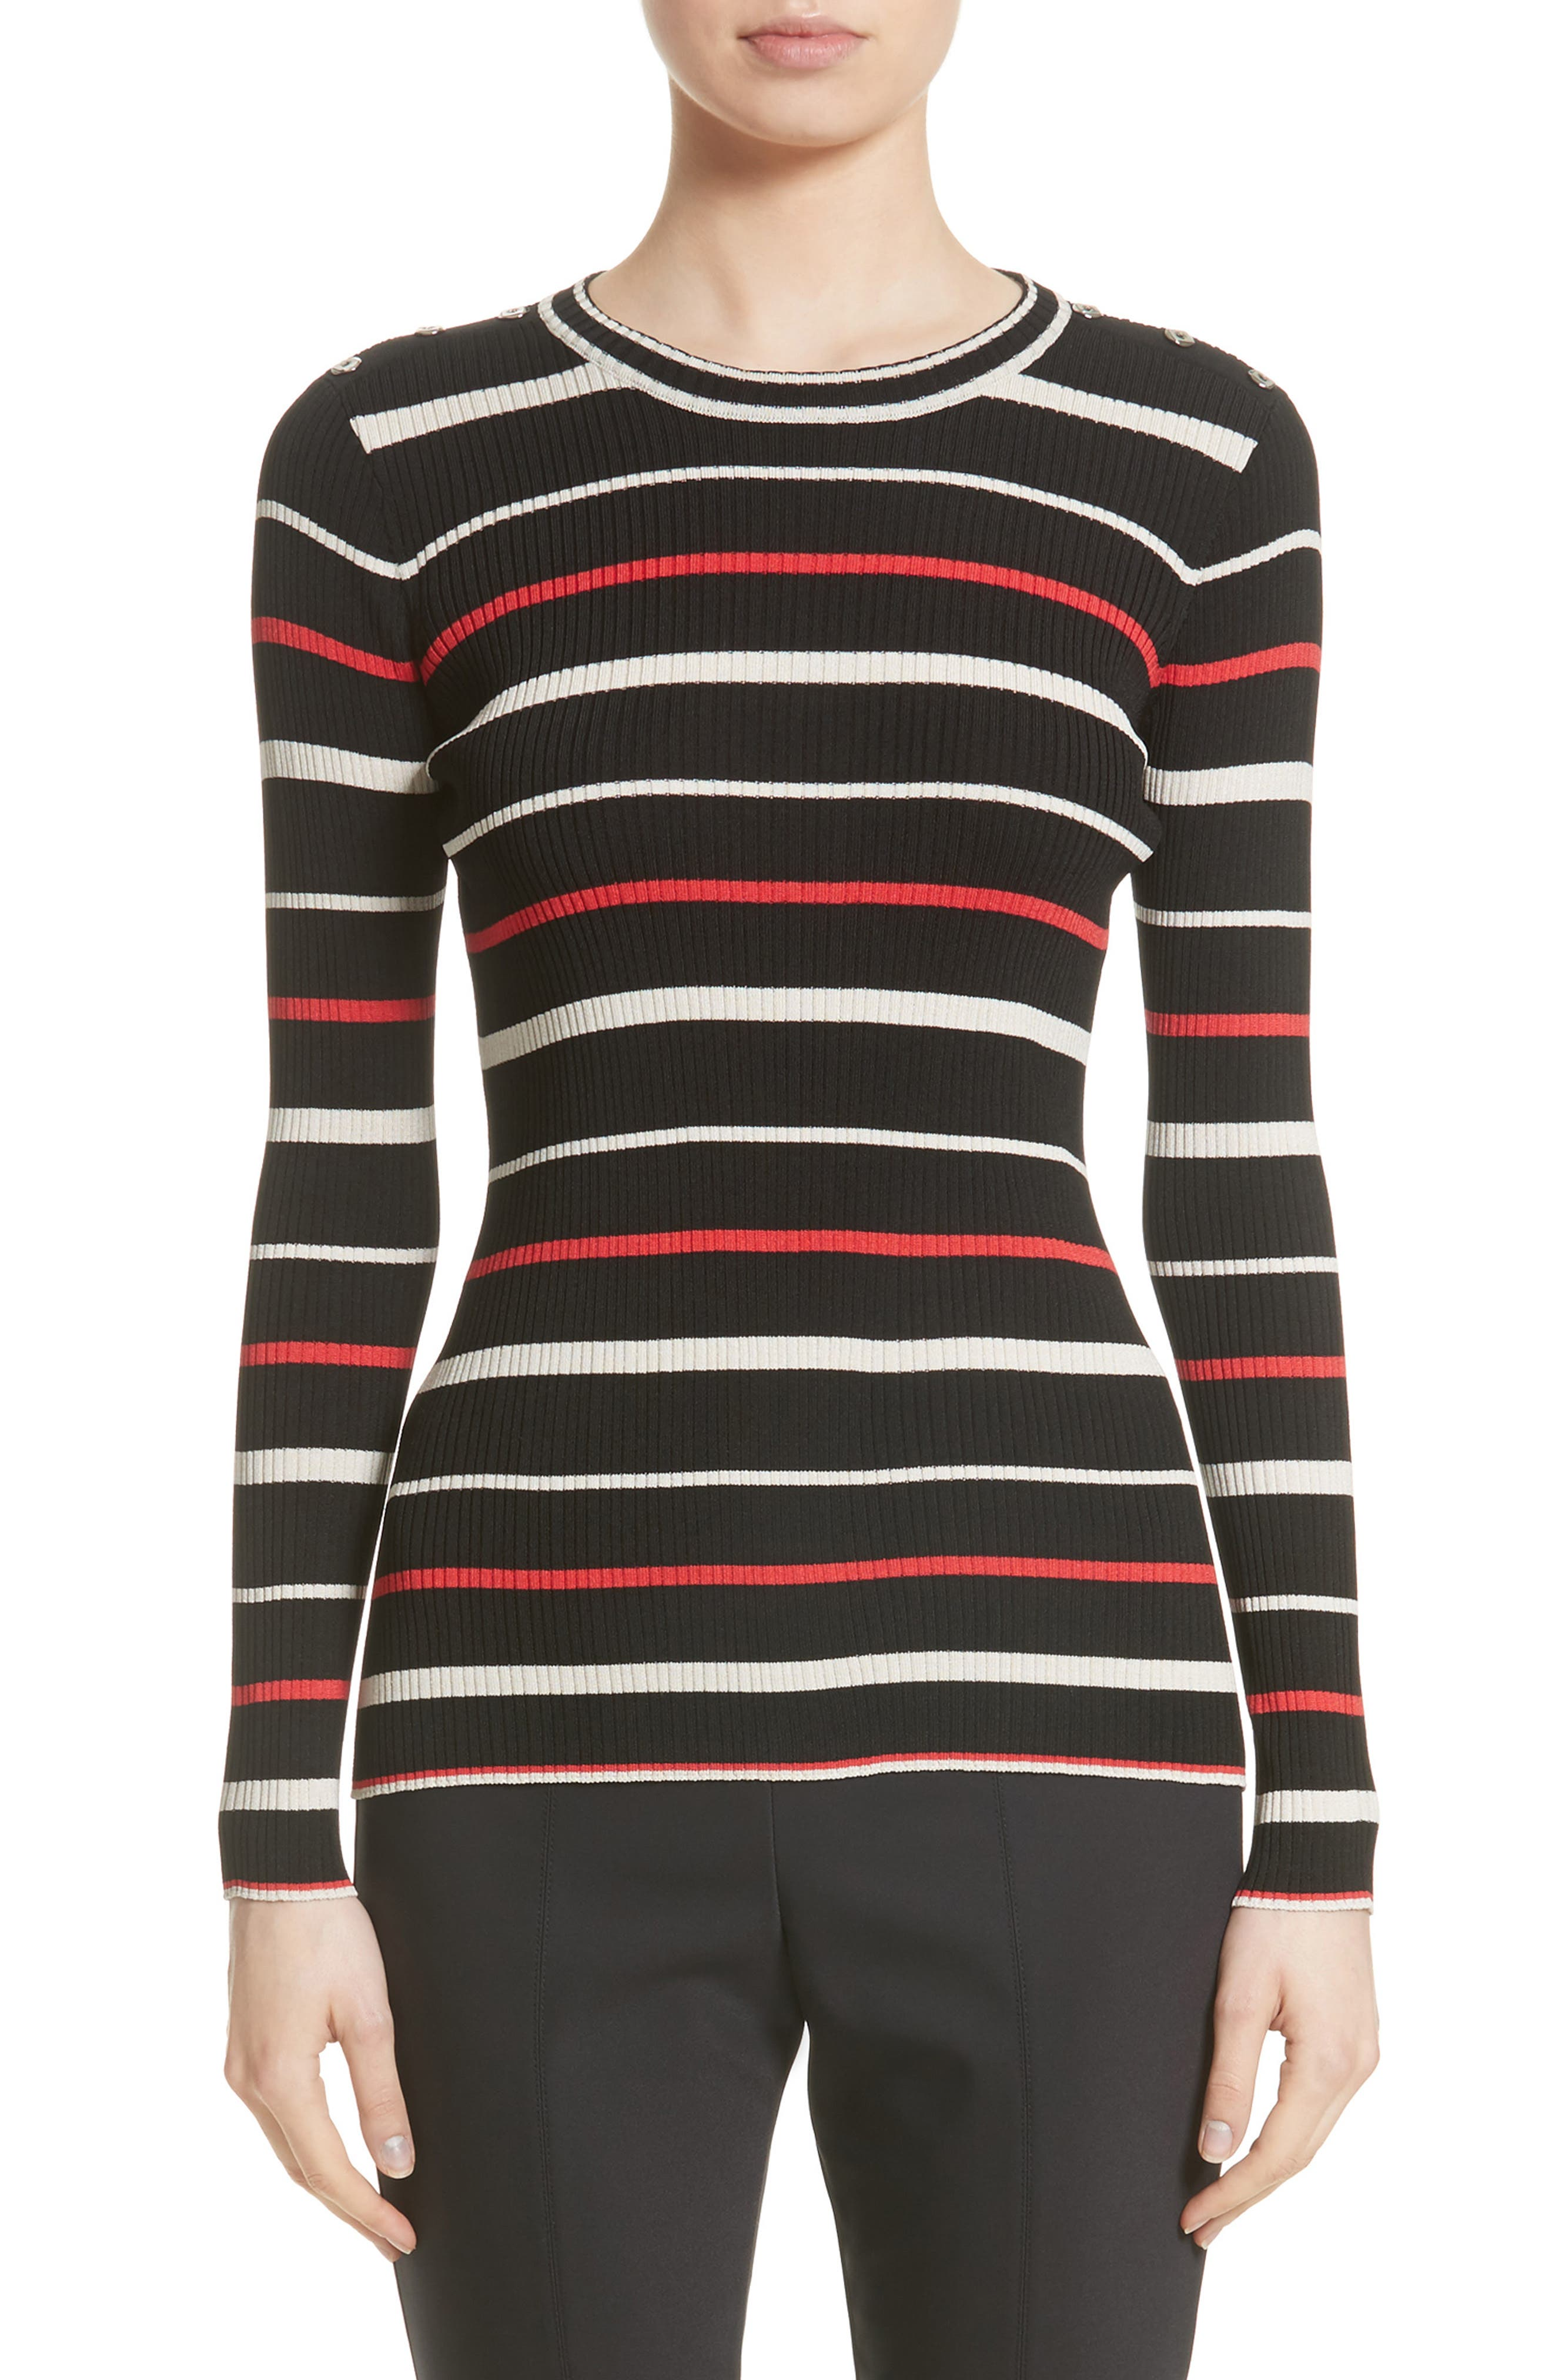 St. John Collection Multicolor Stripe Knit Top (Nordstrom Exclusive)